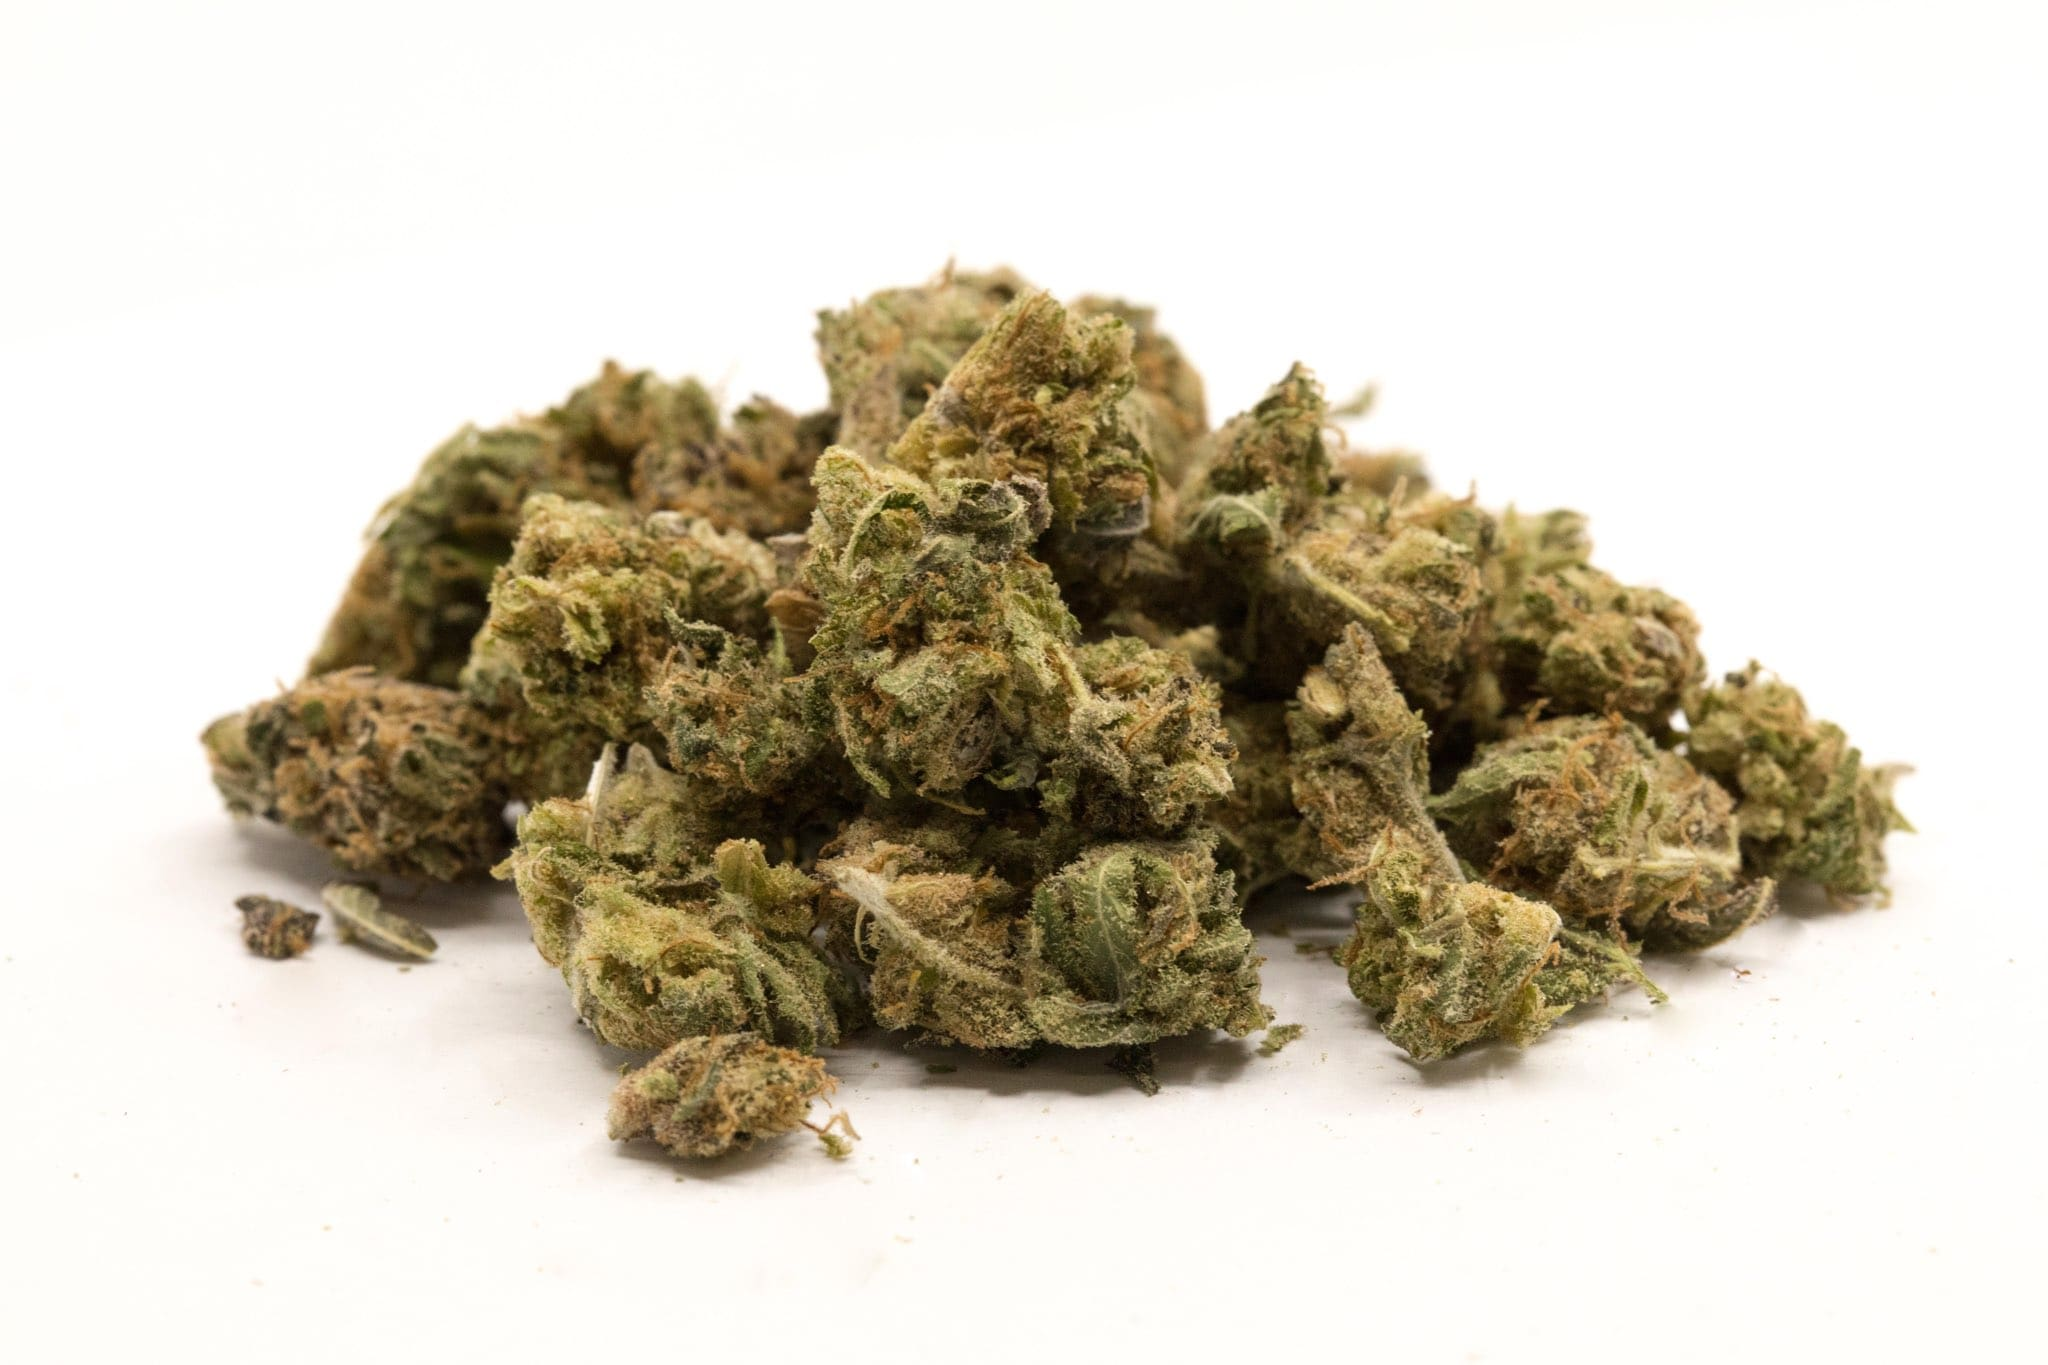 Super Silver Haze CBD Hemp Flower for Sale Online